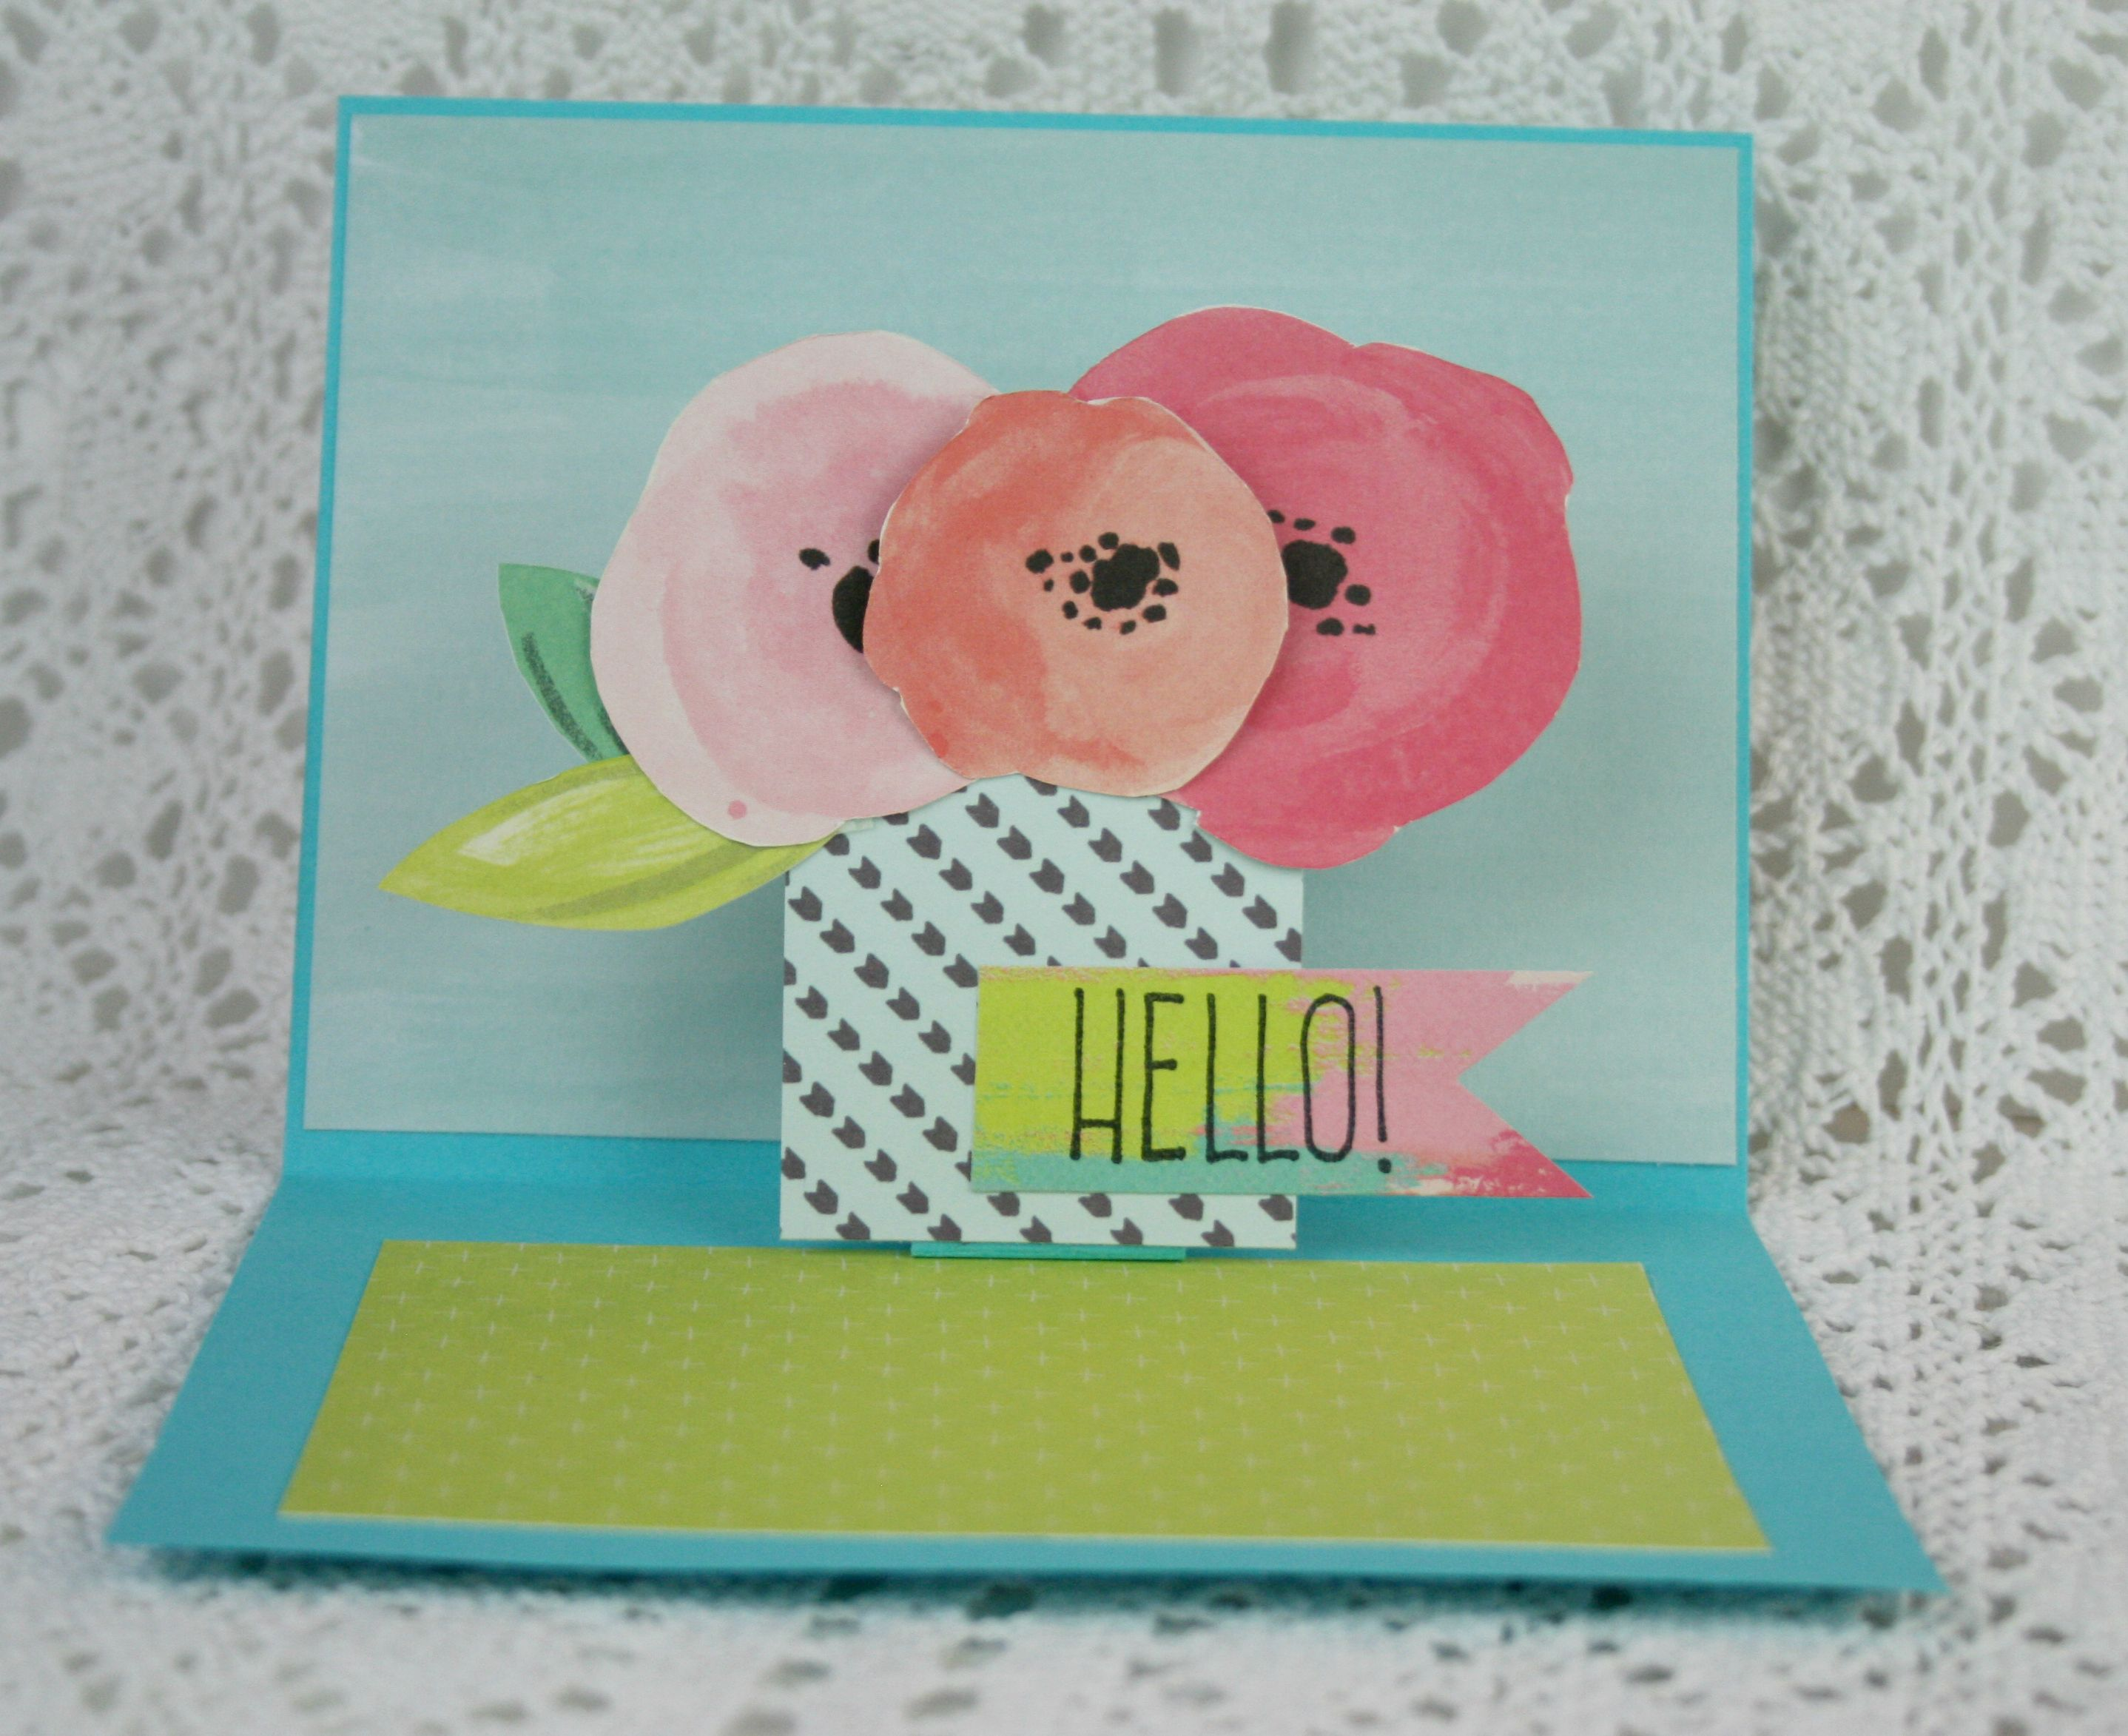 3d Card Making Ideas Part - 19: Learn How To Make A 3D Card And Get 23+ Card Making Ideas!